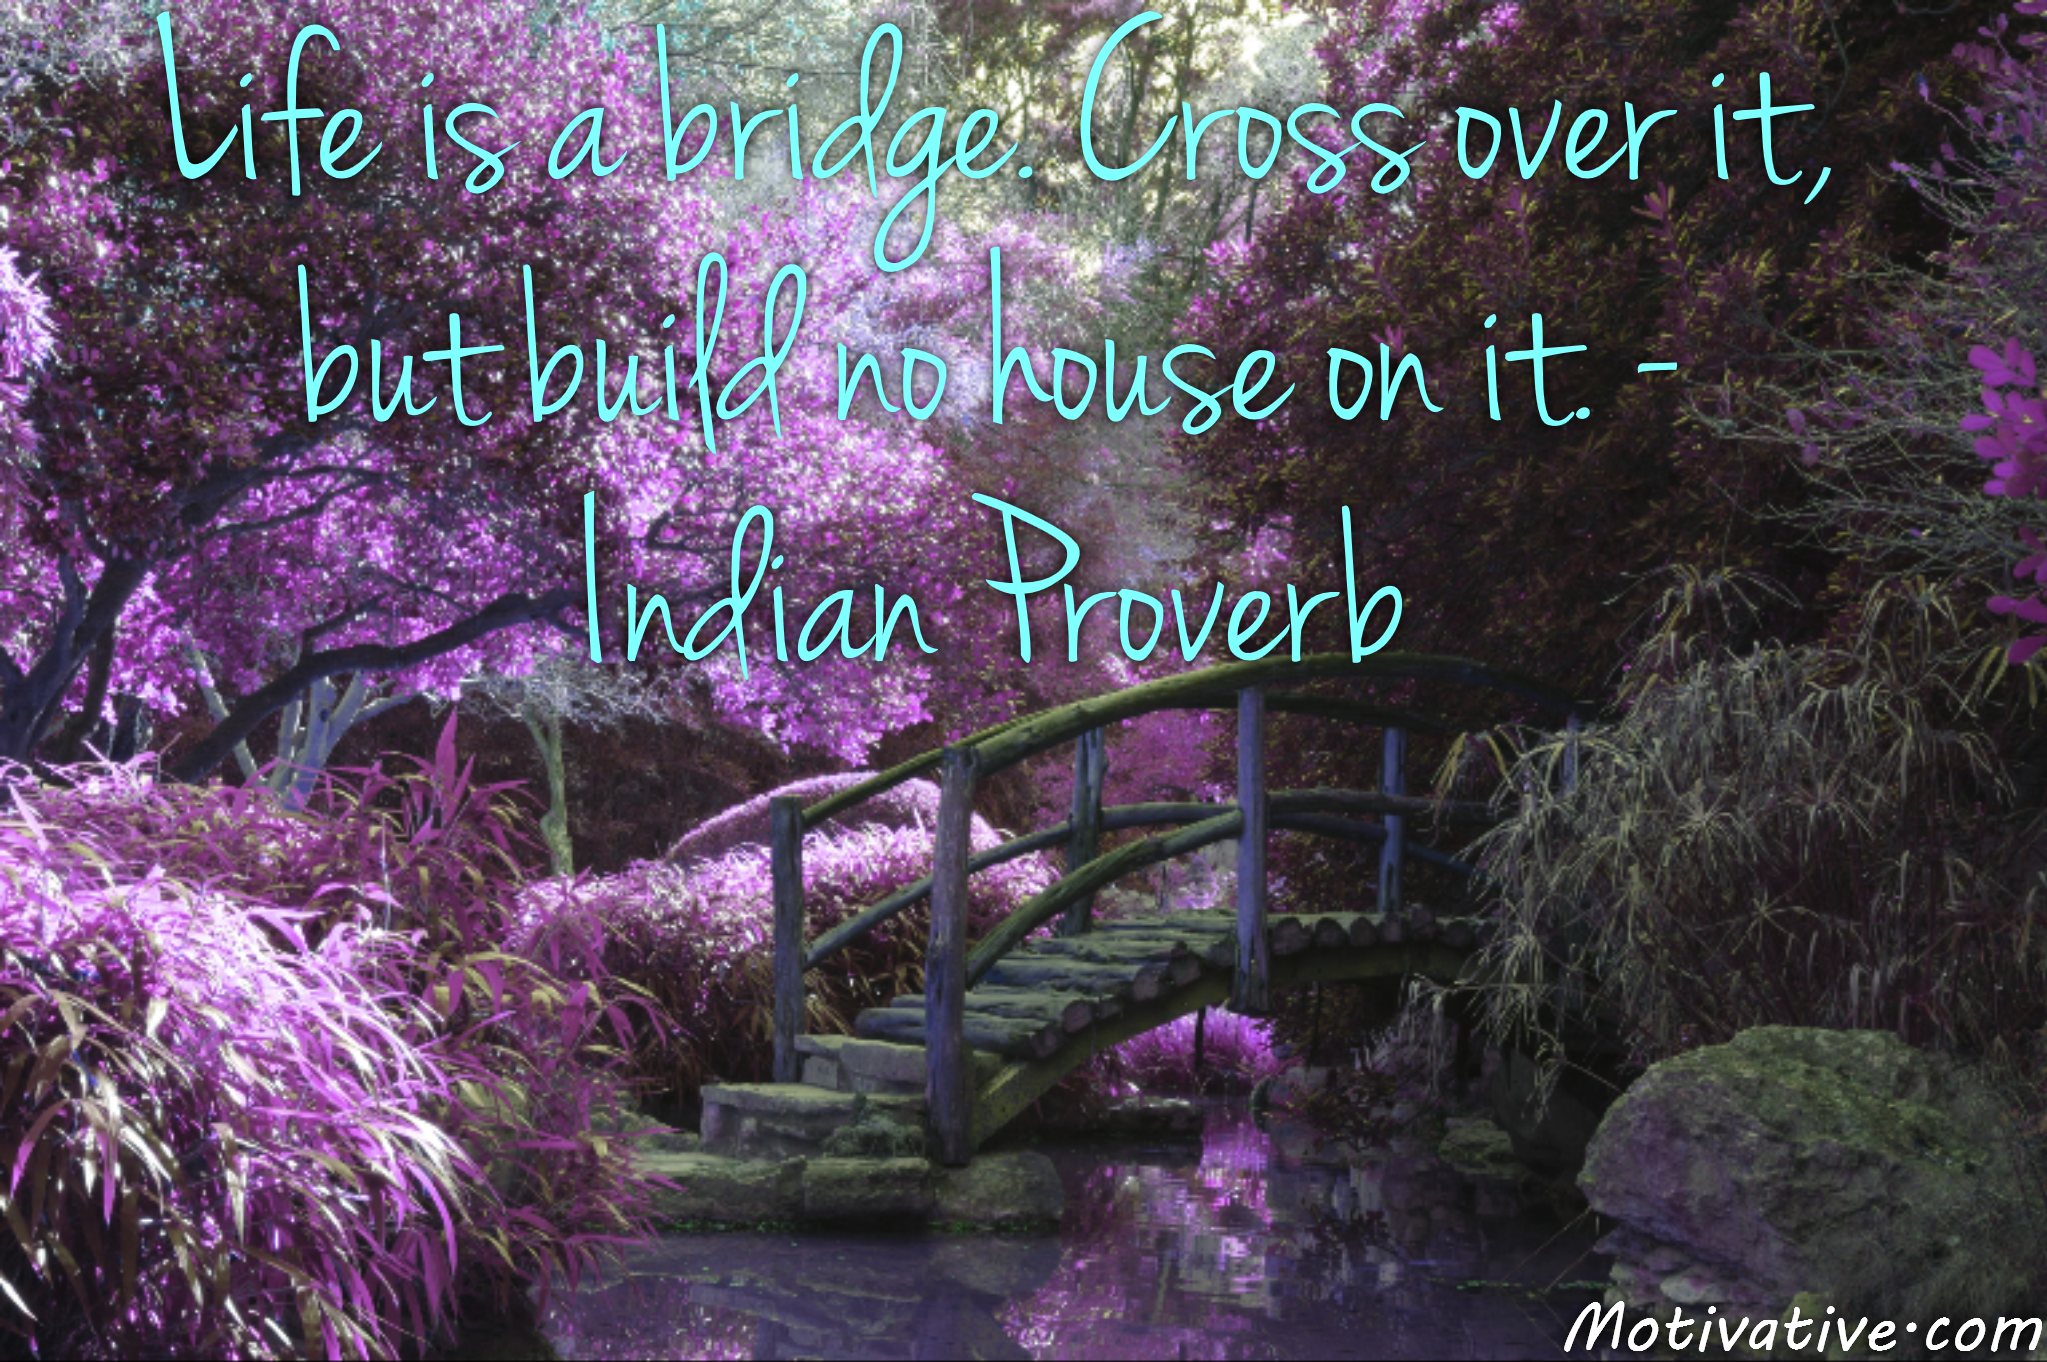 Life is a bridge. Cross over it, but build no house on it. – Indian Proverb